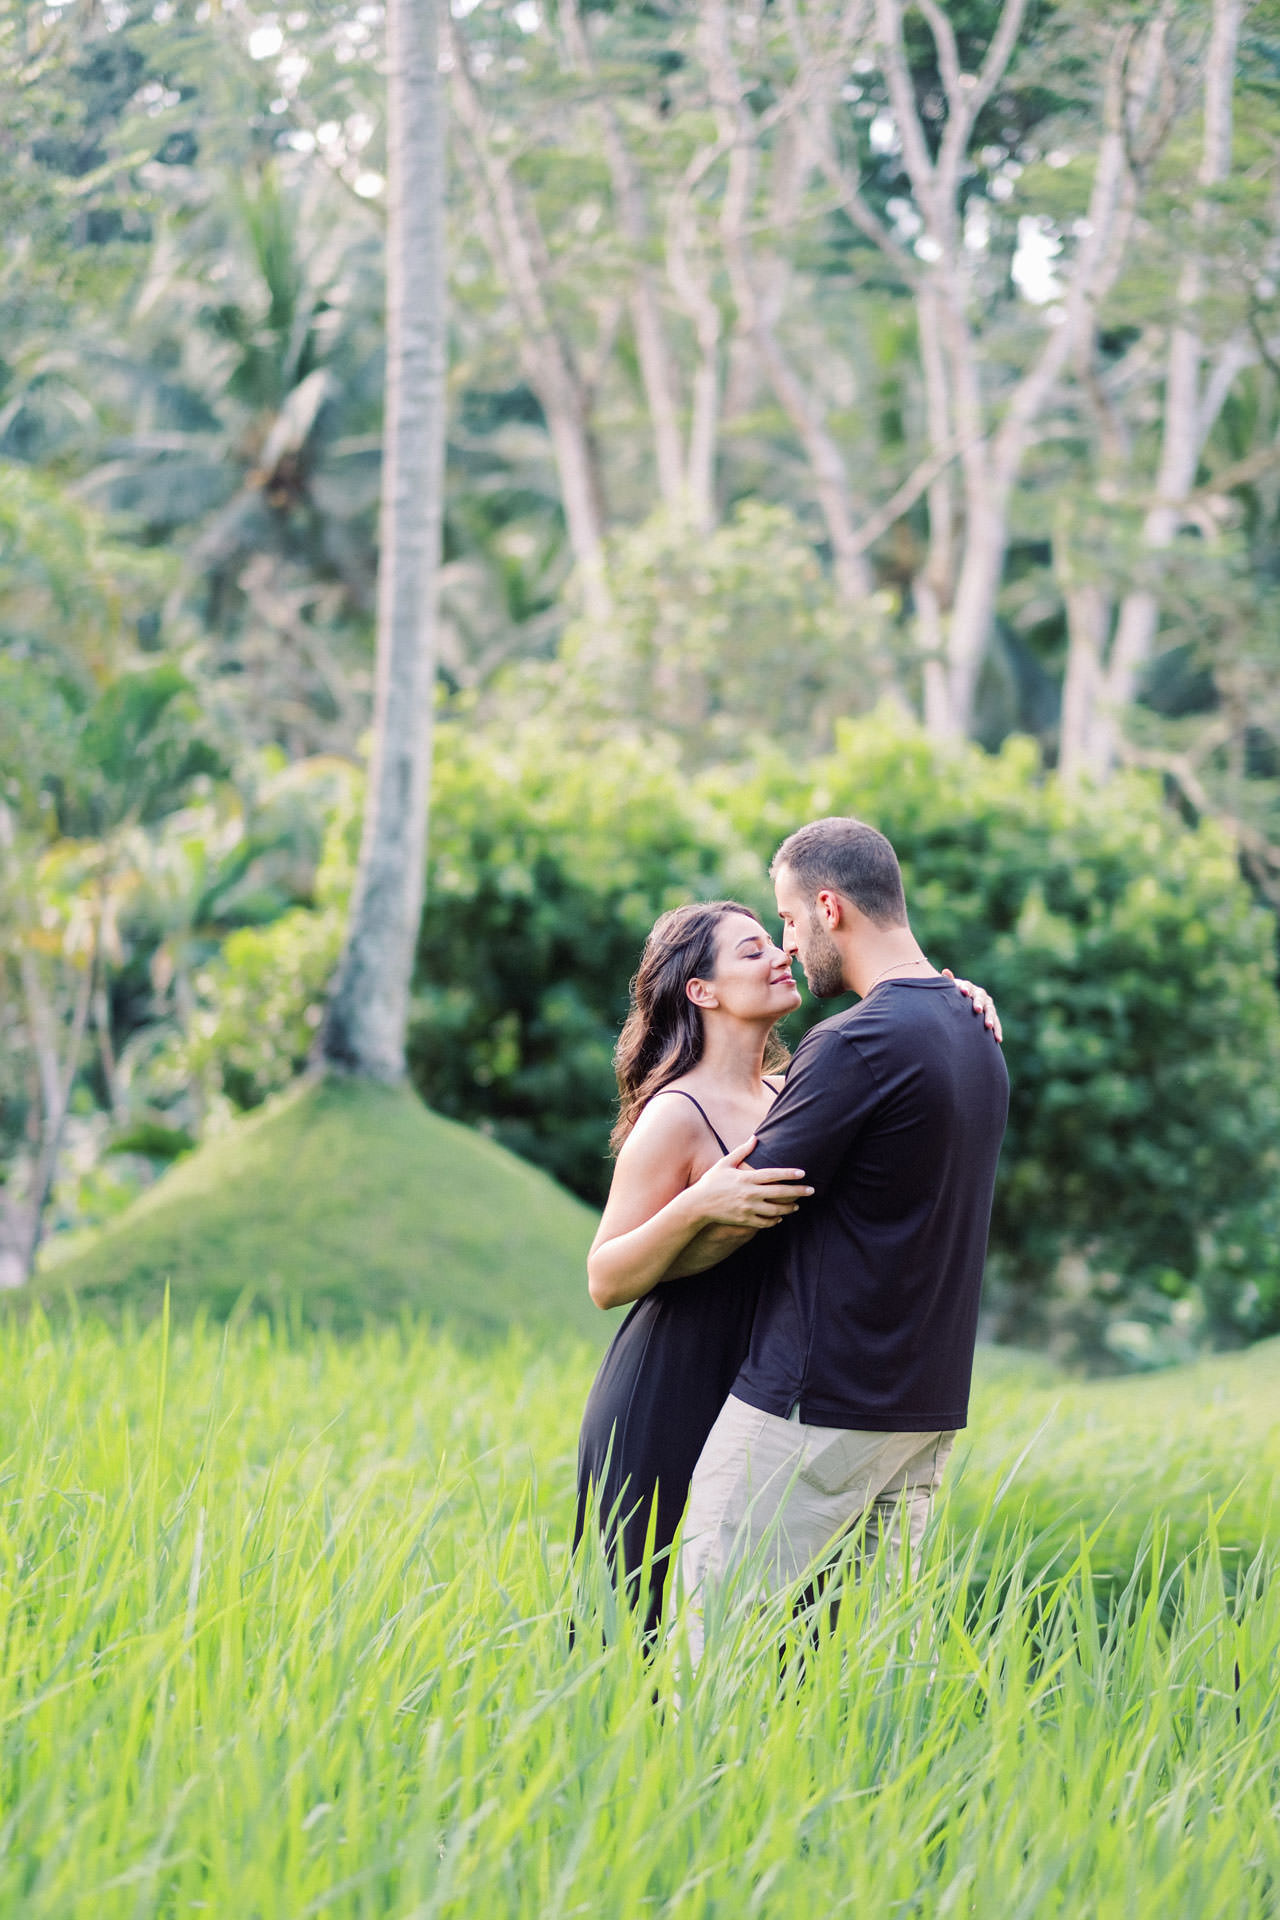 Honeymoon Photo Session at The World's Best Resort 5